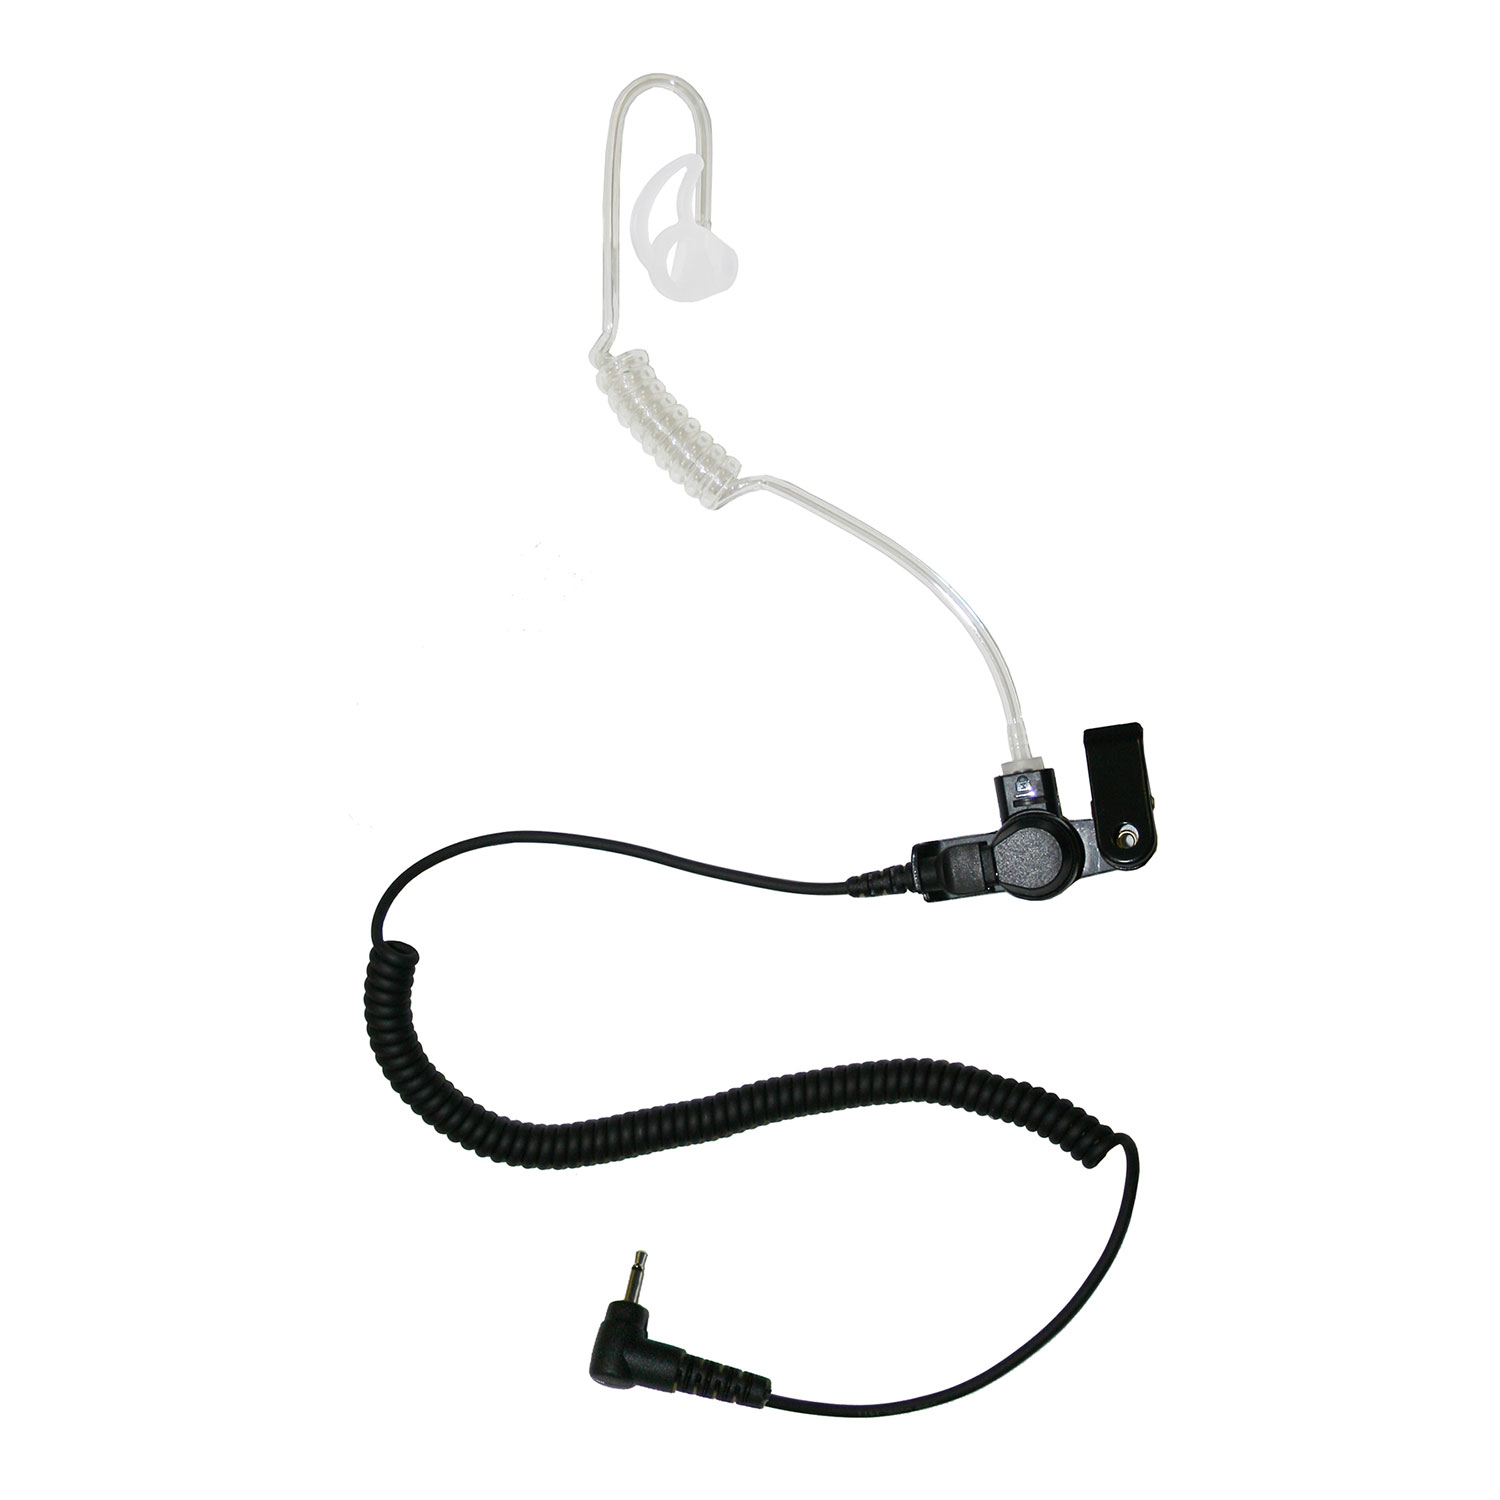 Ear Phone Connection Fox Listen-Only Earpiece with 2.5mm Con